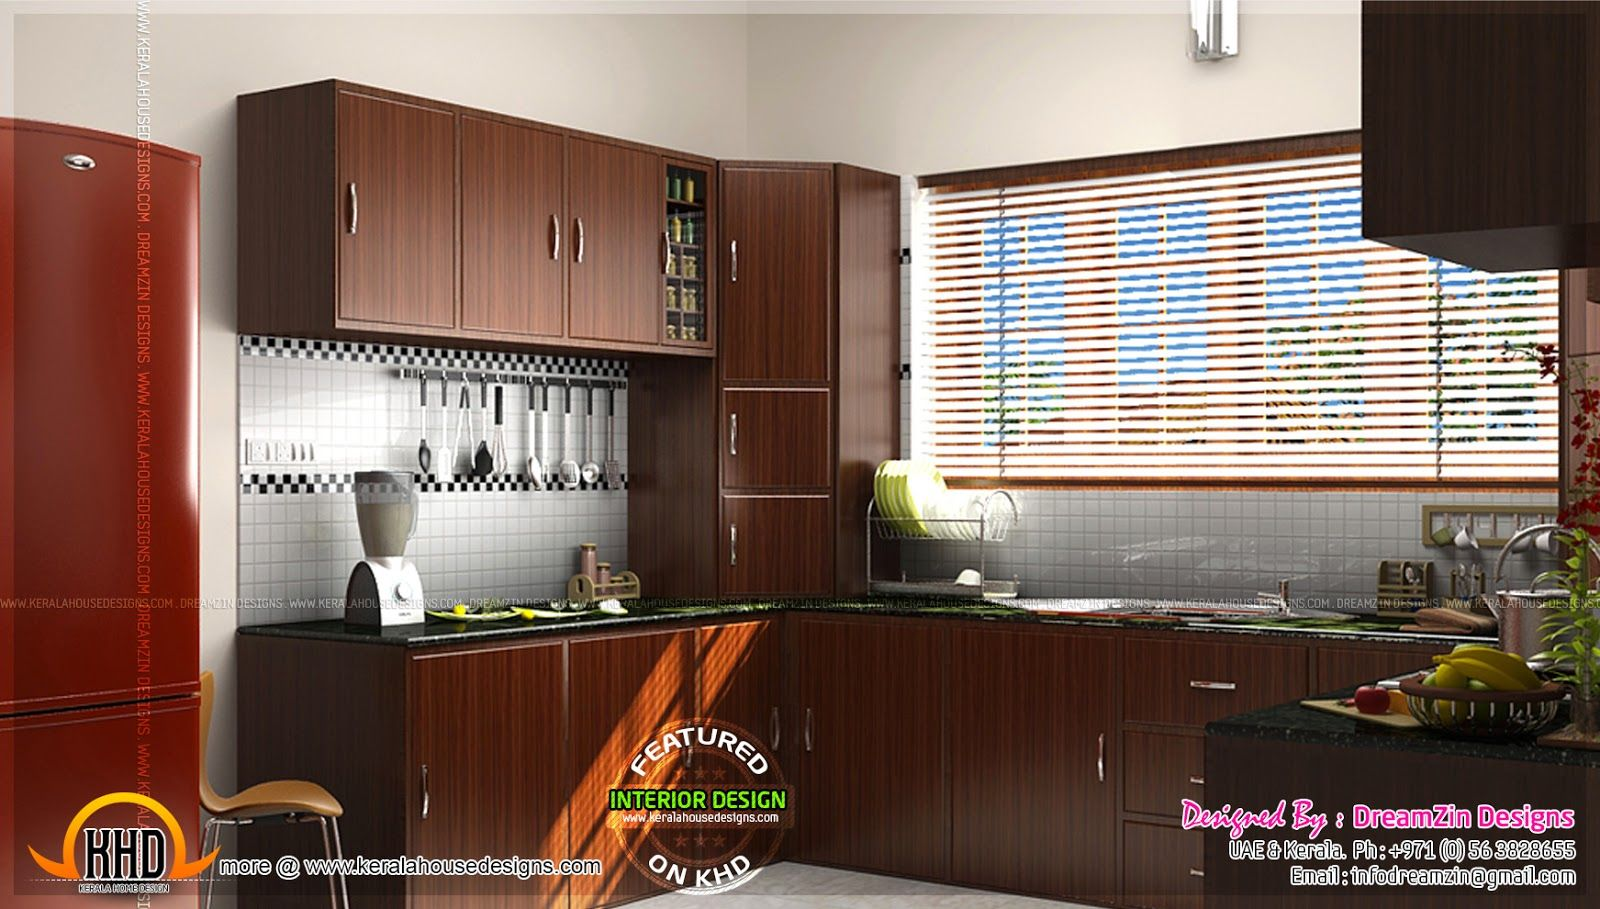 Kerala Kitchen Interior Design Modular Kitchen Kerala Kerala Kitchen Kitchen Interior Designs